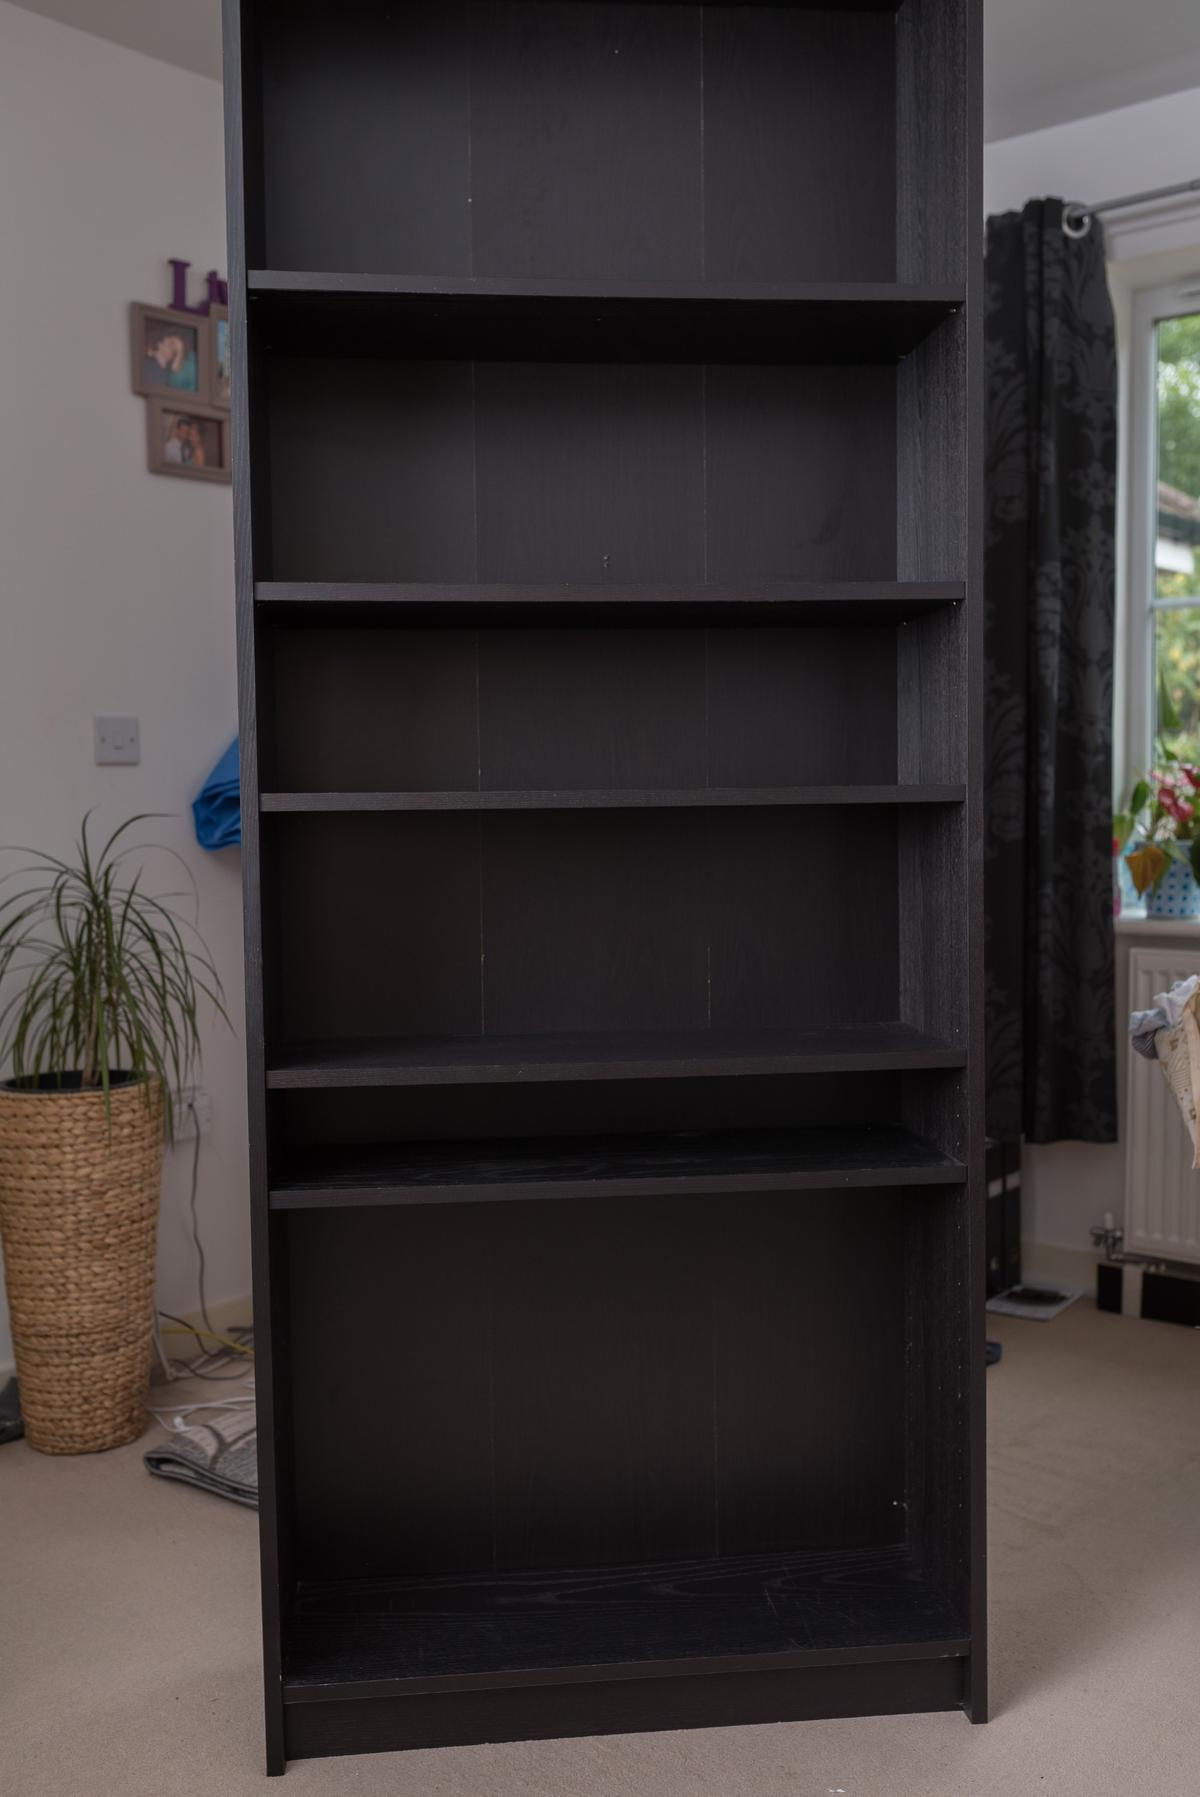 Ikea Billy Bookcase Black Brown In Rg2 Shinfield For